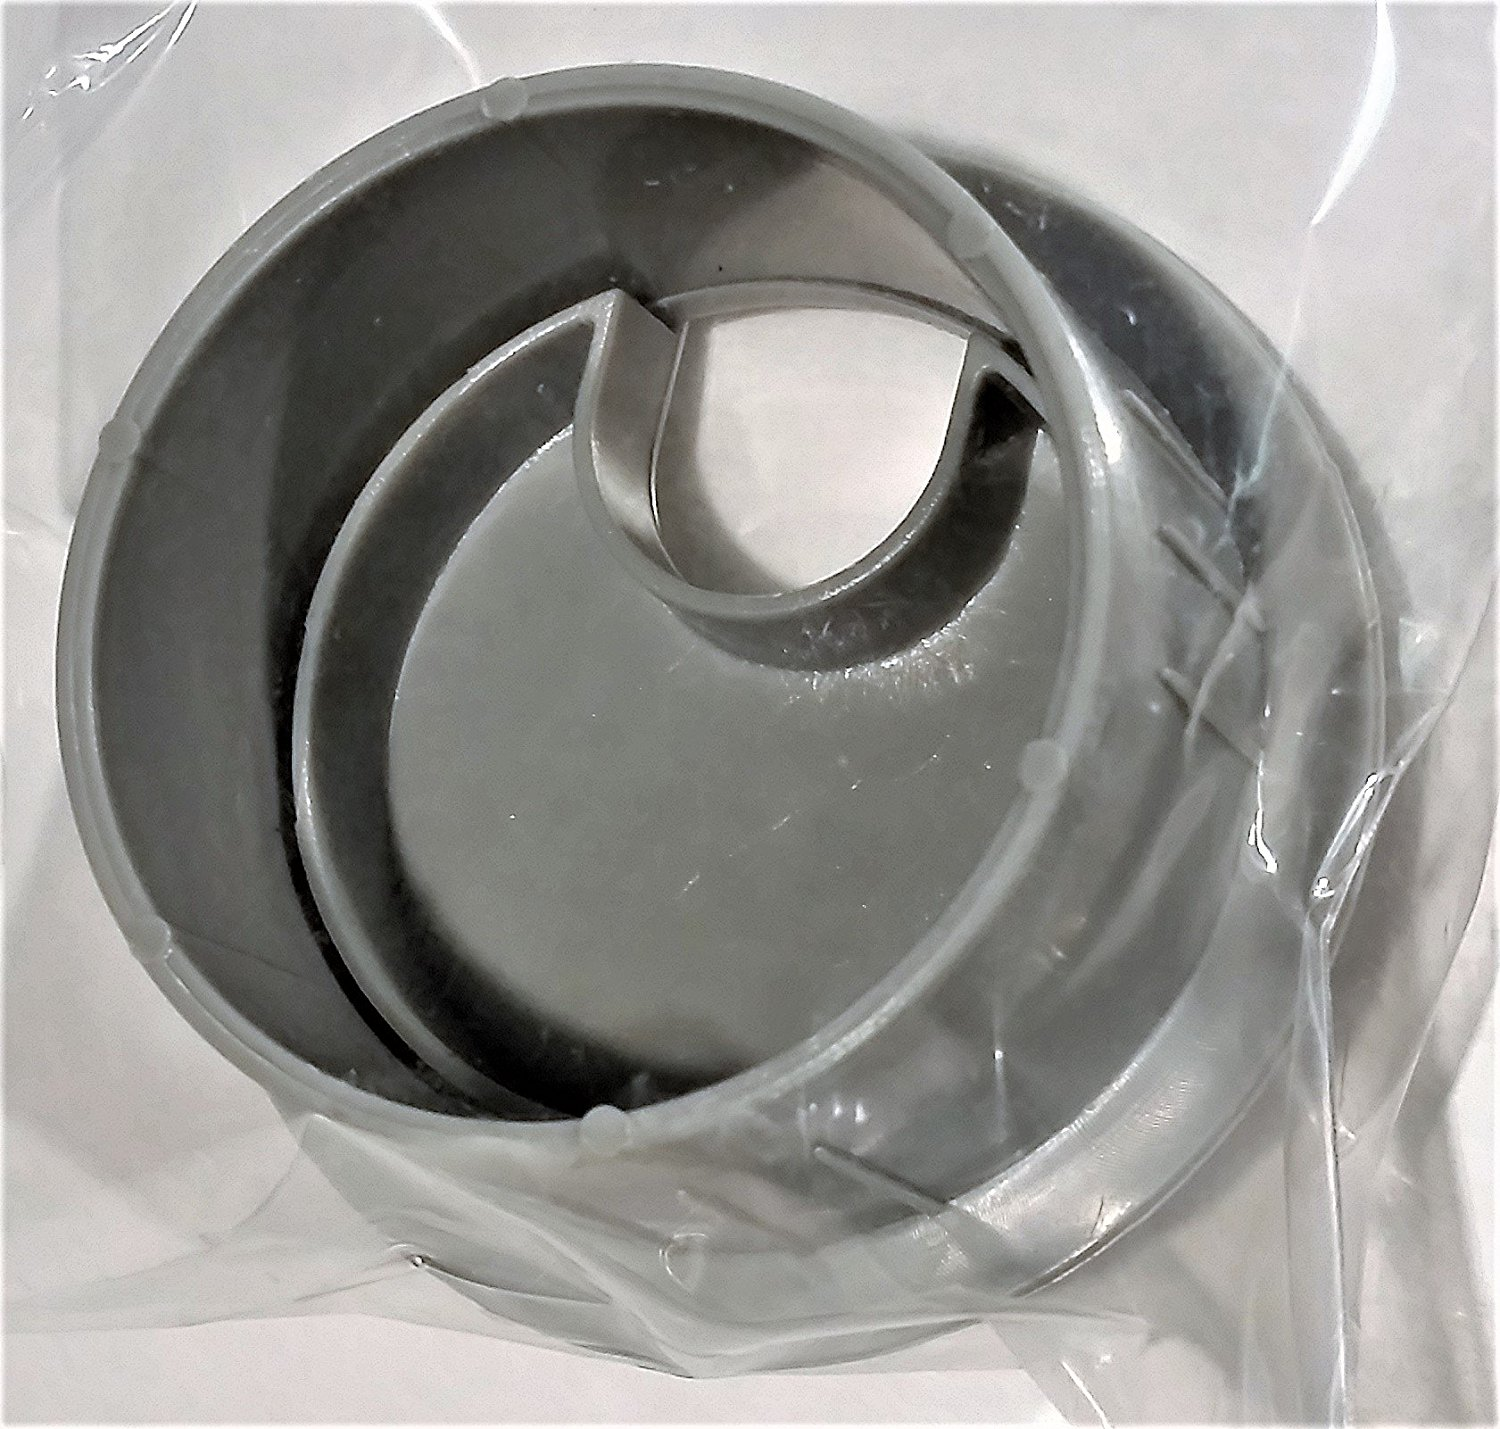 Furniture Hole Cover Wire Access 2 Inch CE TECH | Grey Gray